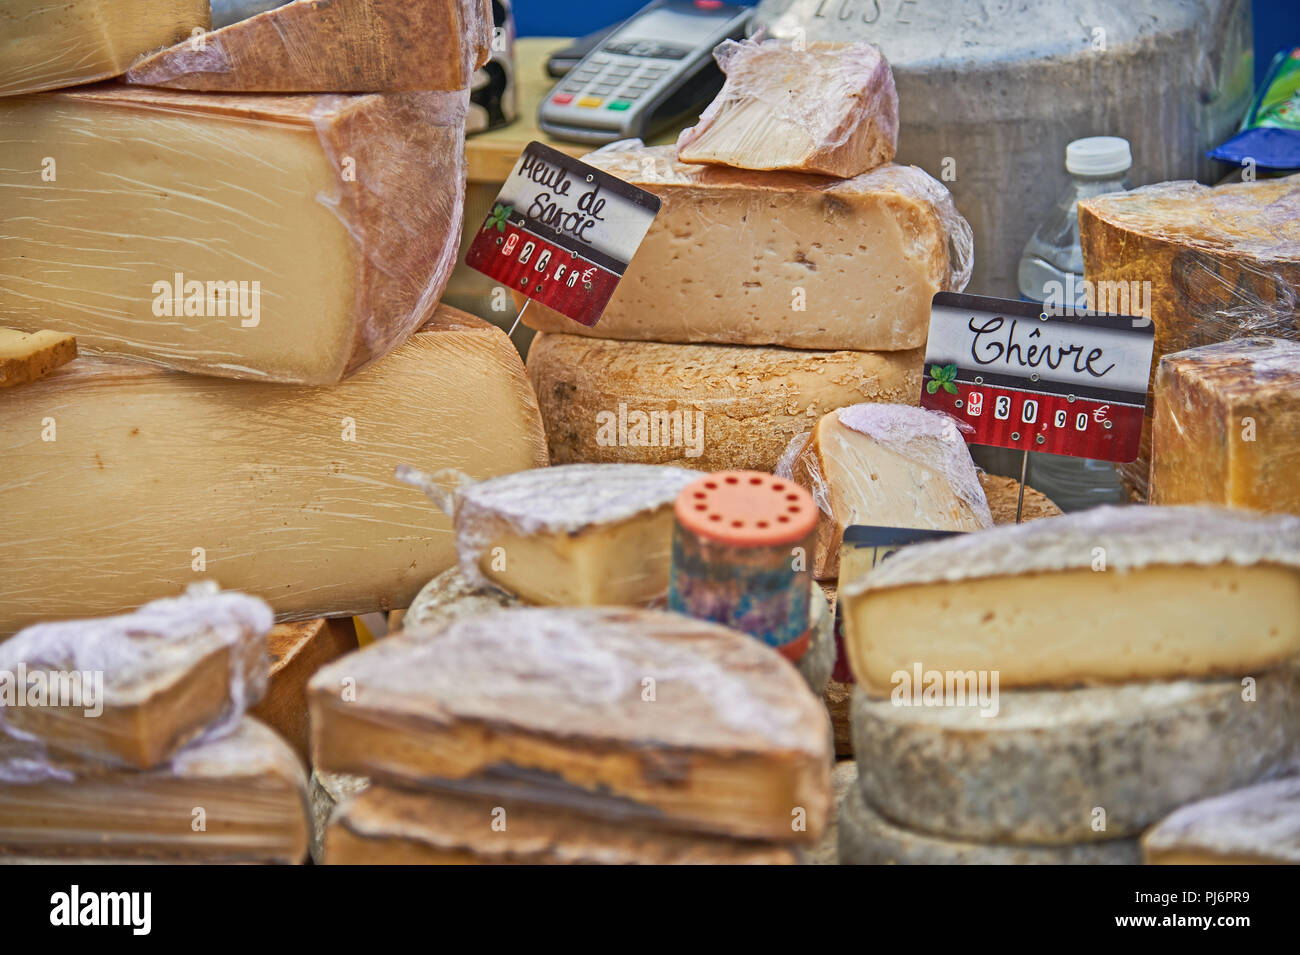 Stall selling cheese at the weekly market in the town of Lamastre, Ardeche, Rhone Alps region of France Stock Photo